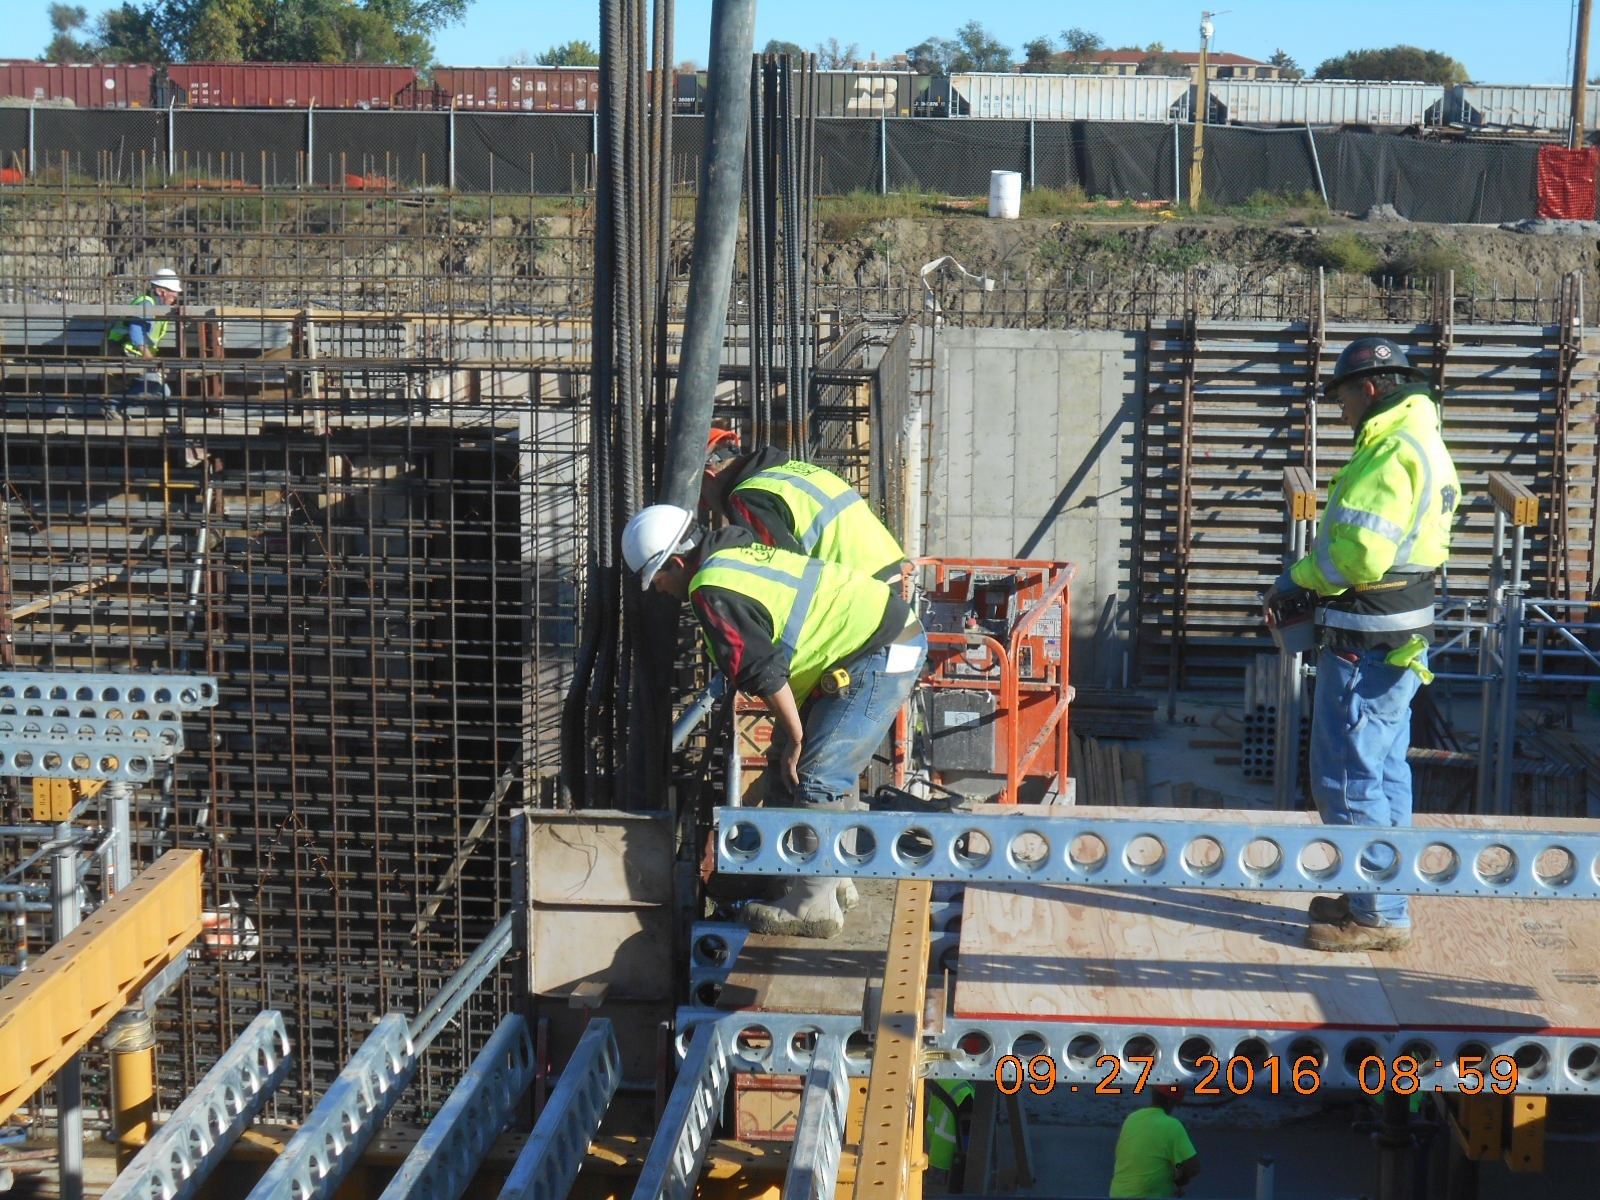 JTJ placing concrete for the column at Grid F-3.